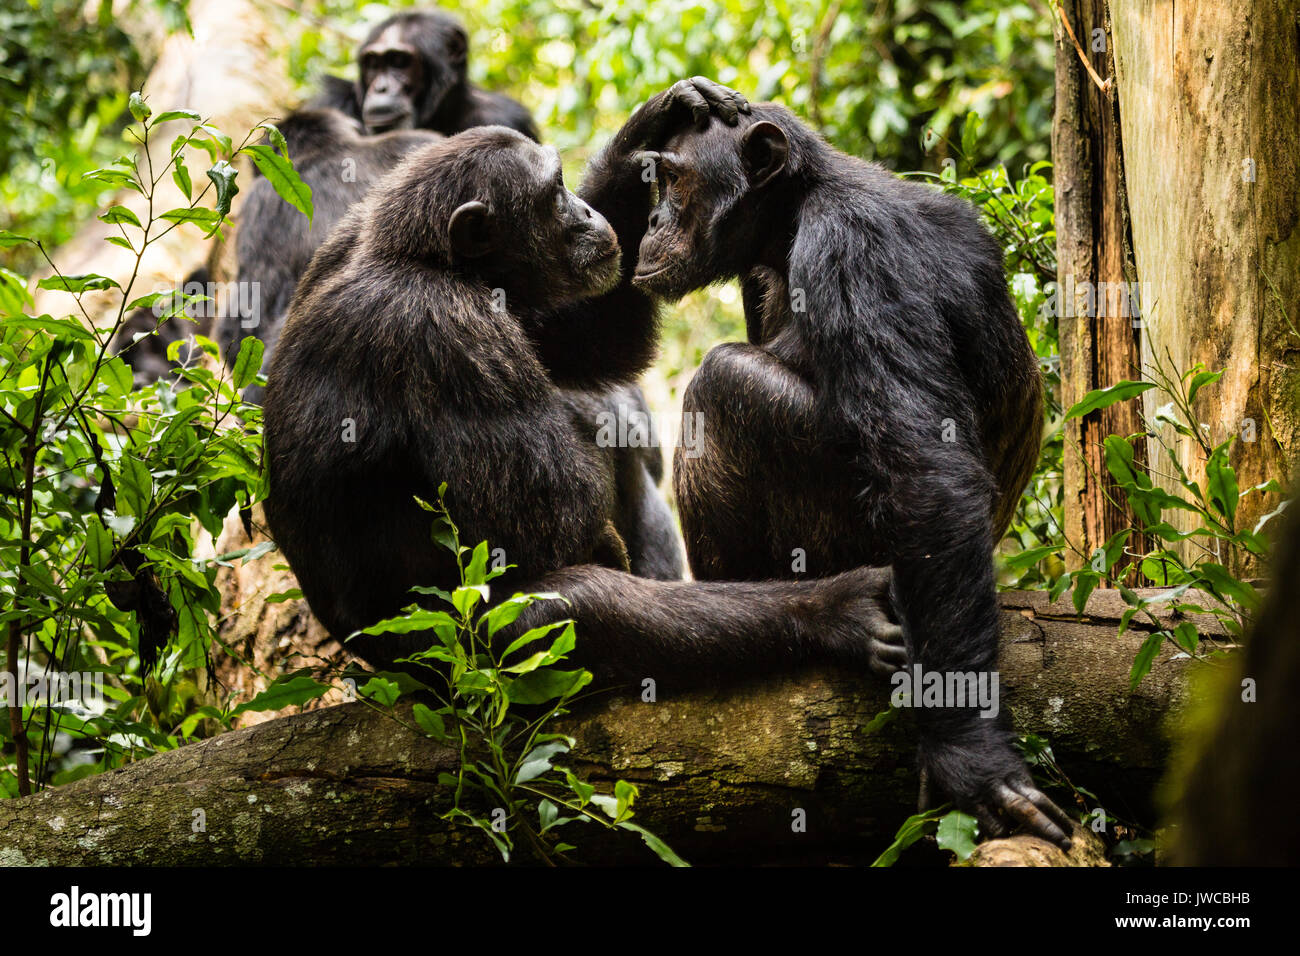 Common chimpanzees (Pan Troglodytes) in forest, grooming, Kibale National Park, Uganda Stock Photo